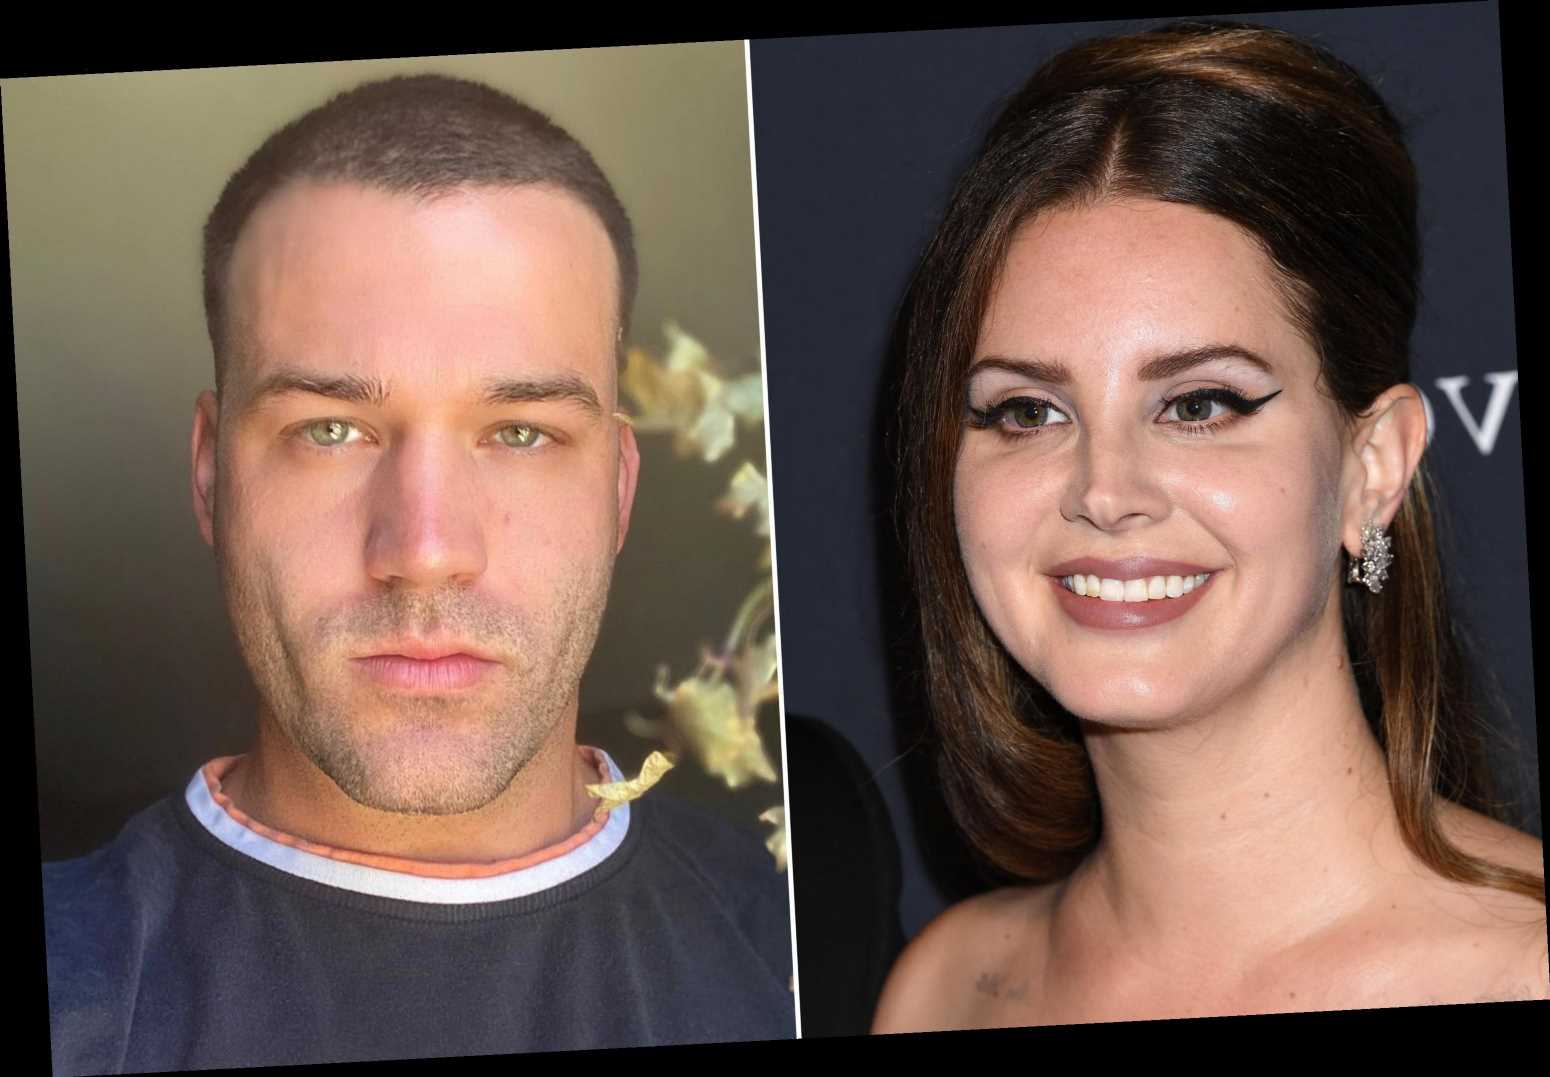 Lana Del Rey shares photo with fiancé